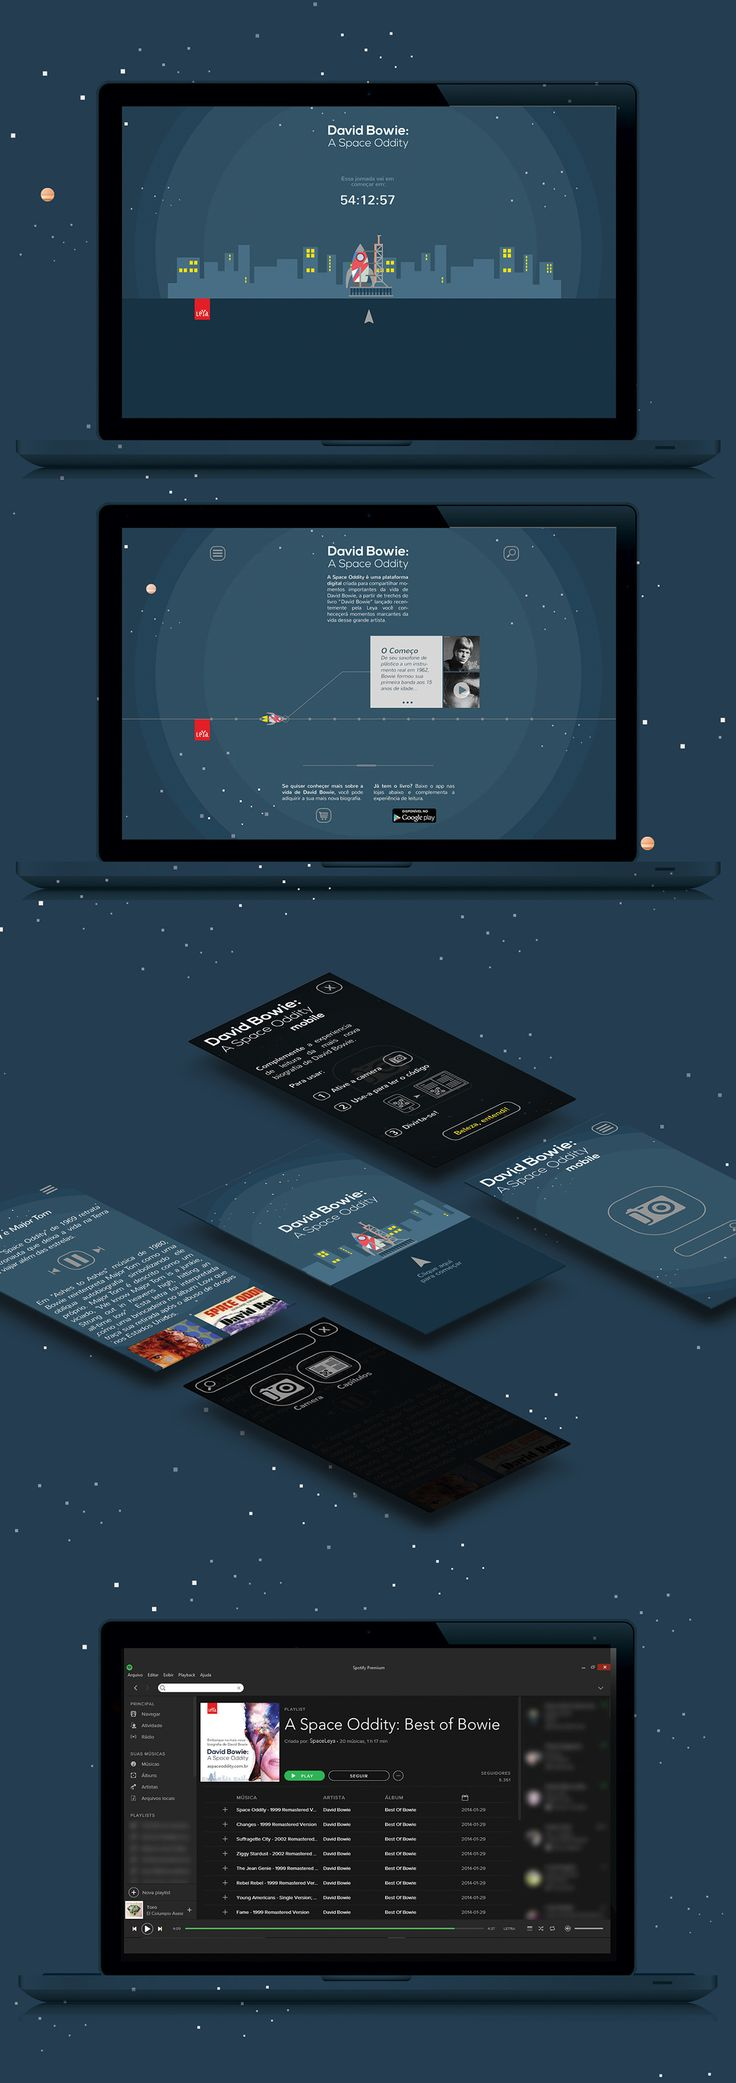 David Bowie: A Space Oddity - Website & App